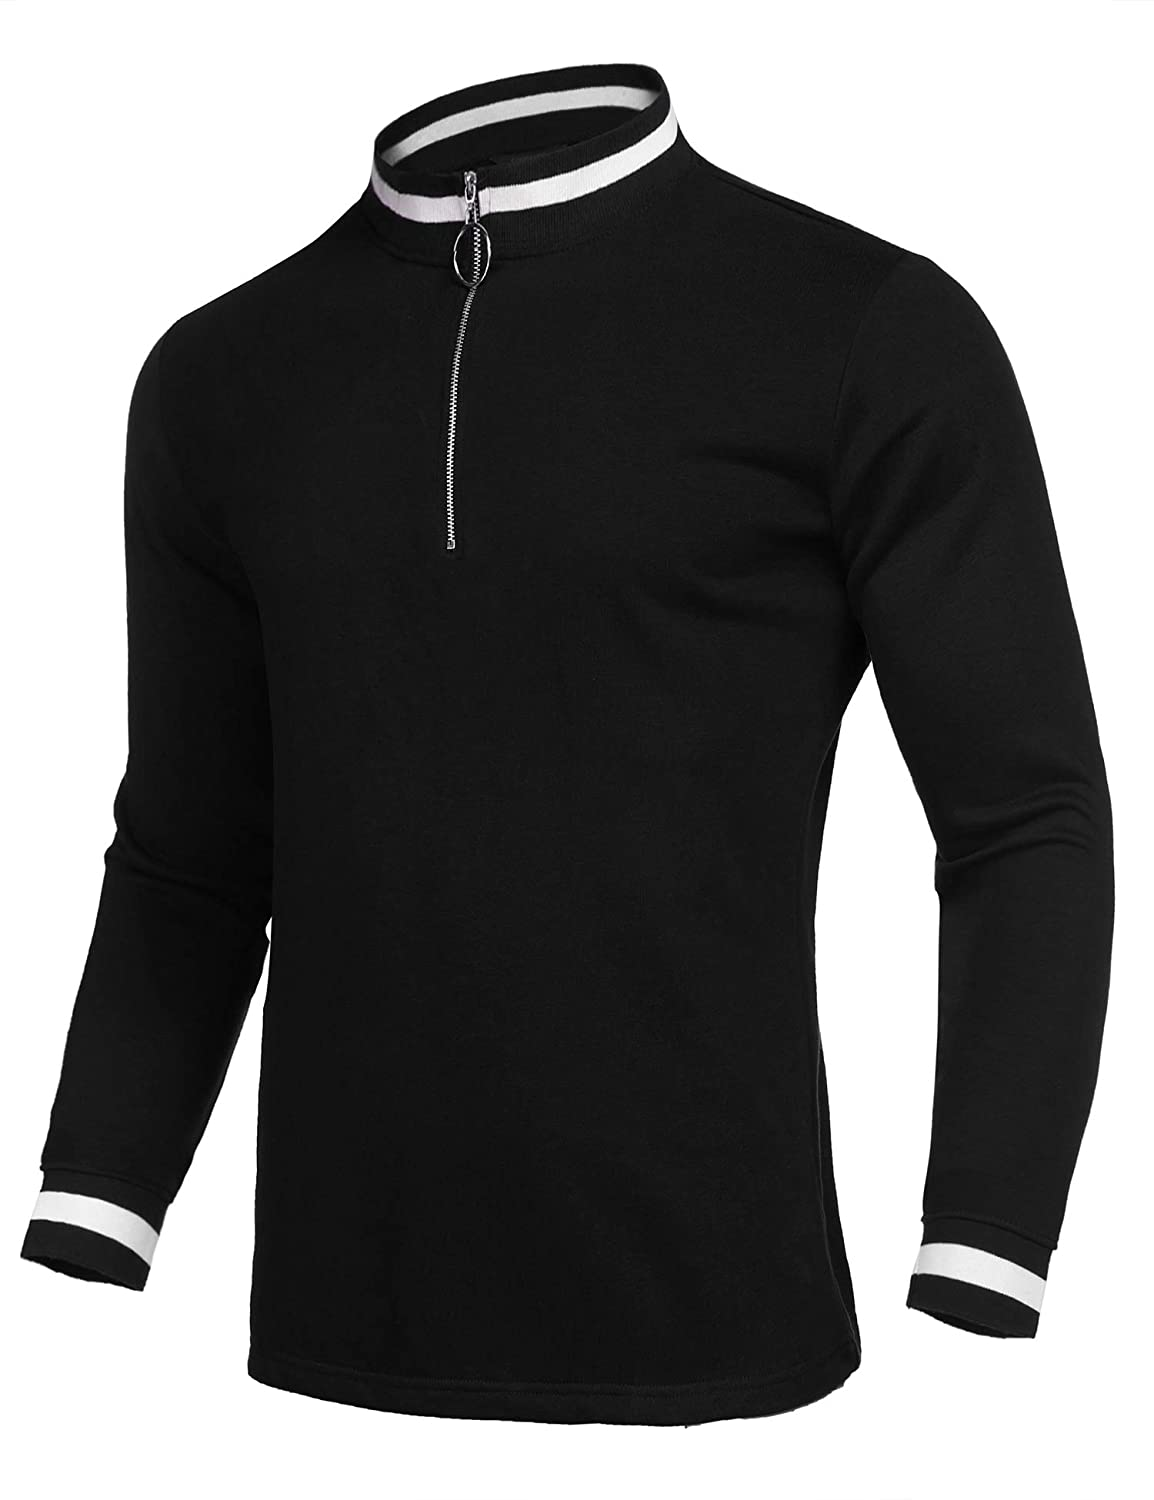 cda4910d18daf3 ... pullover sweatshirts suit for fitness, golf course, office, daily life,  fitness, or other outdoor activities. Mock neck collar, rib knit cuffs, ...